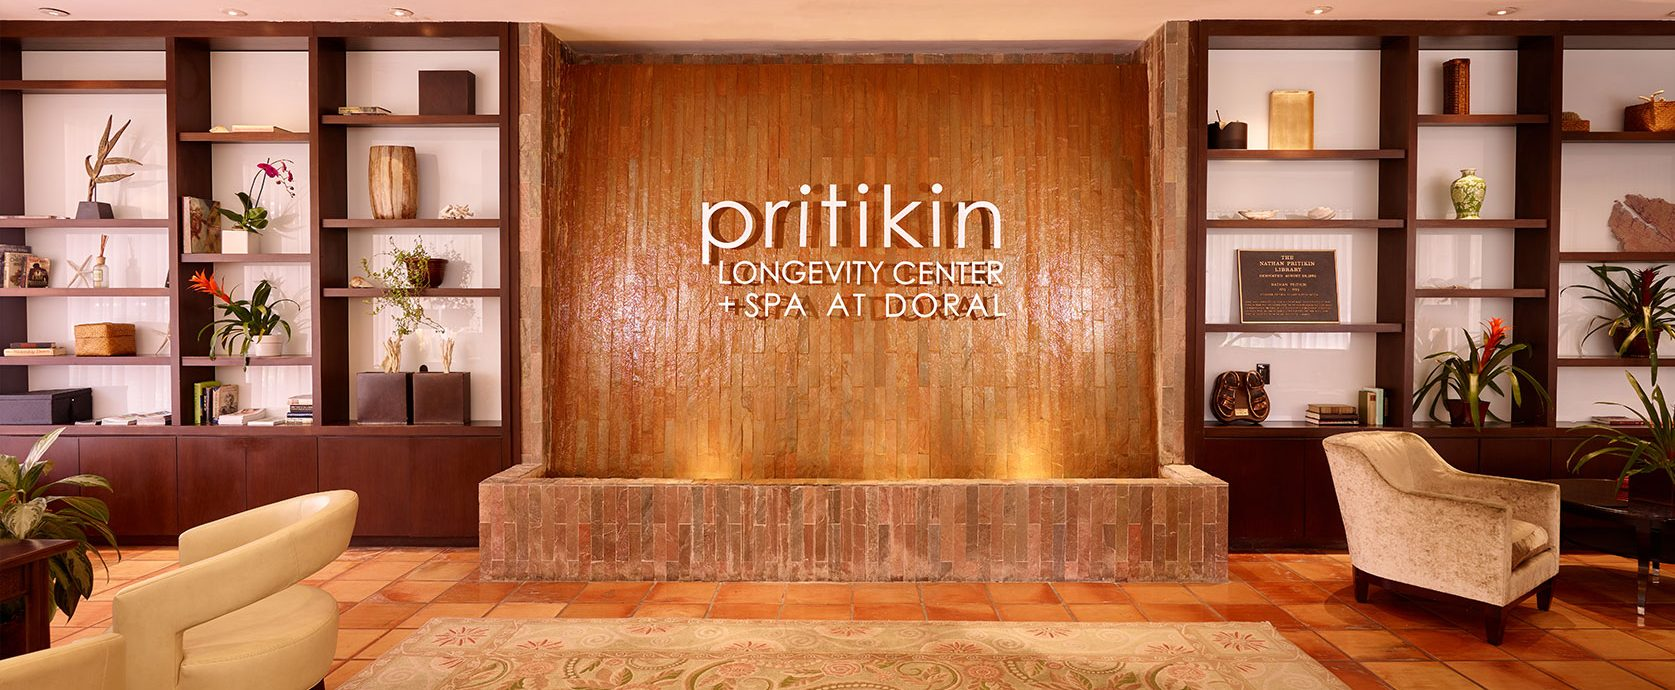 Pritikin Health Resort Voted Best Weight Loss Resort